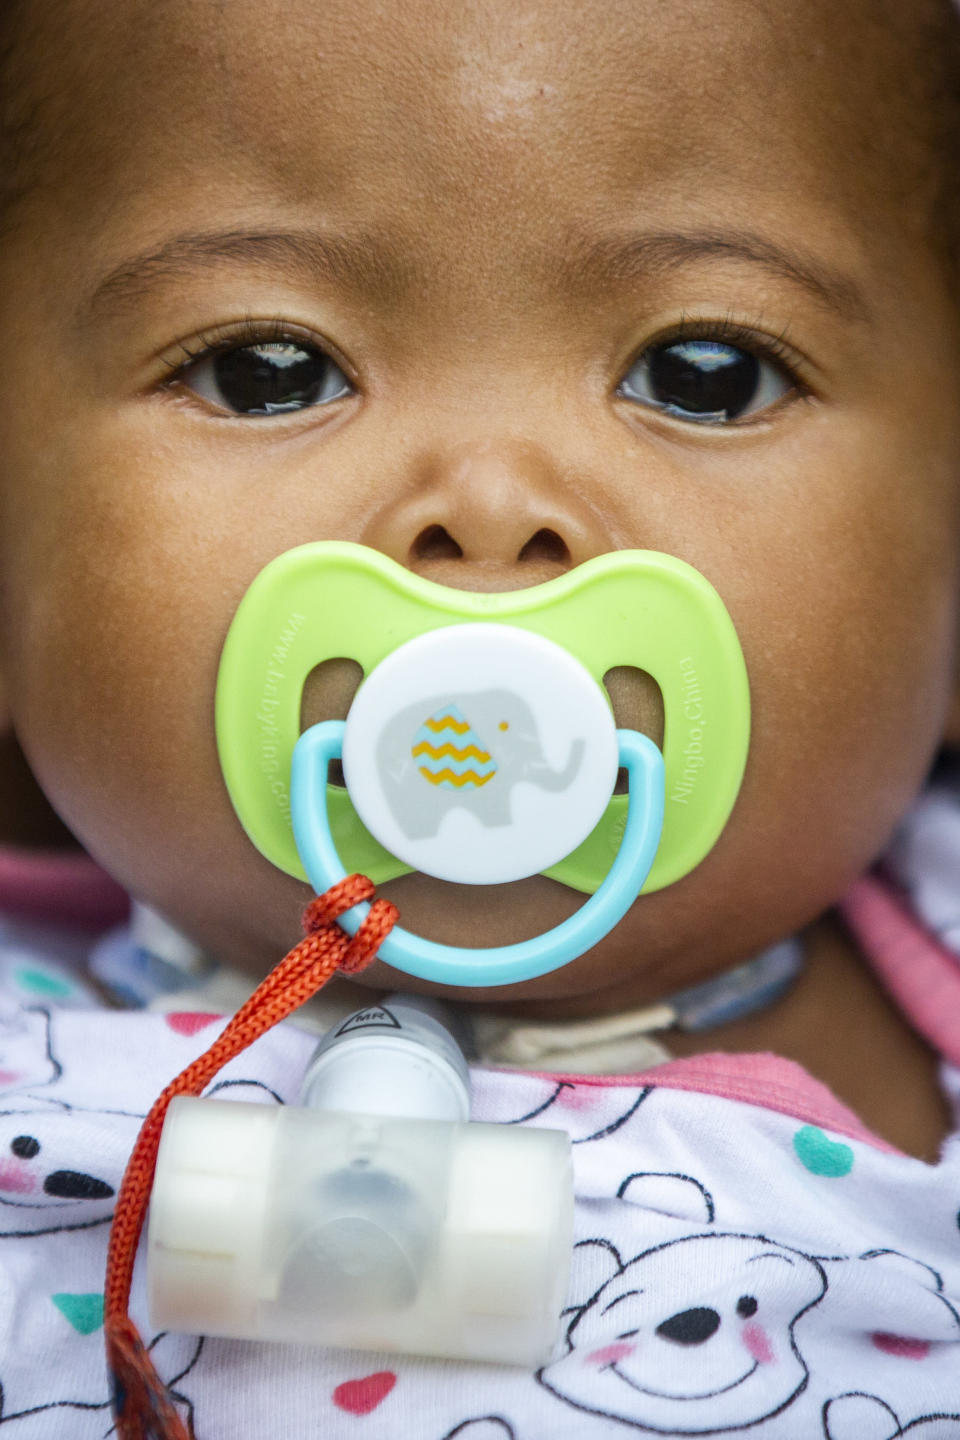 Jalayah Johnson, who lost her hospital job during the pandemic, wears a tracheal tube as she sucks on a pacifier as her mother, Tyesha Young, holds her in Waggaman, La., Friday, July 2, 2021. More than $7,000 behind on rent, Young had hoped a program in Louisiana would bail her out and allow her family to avert eviction in the coming weeks. But the 29-year-old mother of two from Jefferson Parish is still waiting to hear whether any of the $308 million available from the state for rental assistance and utility payments will give her a lifeline. She applied for money last year but never heard anything. (AP Photo/Sophia Germer)